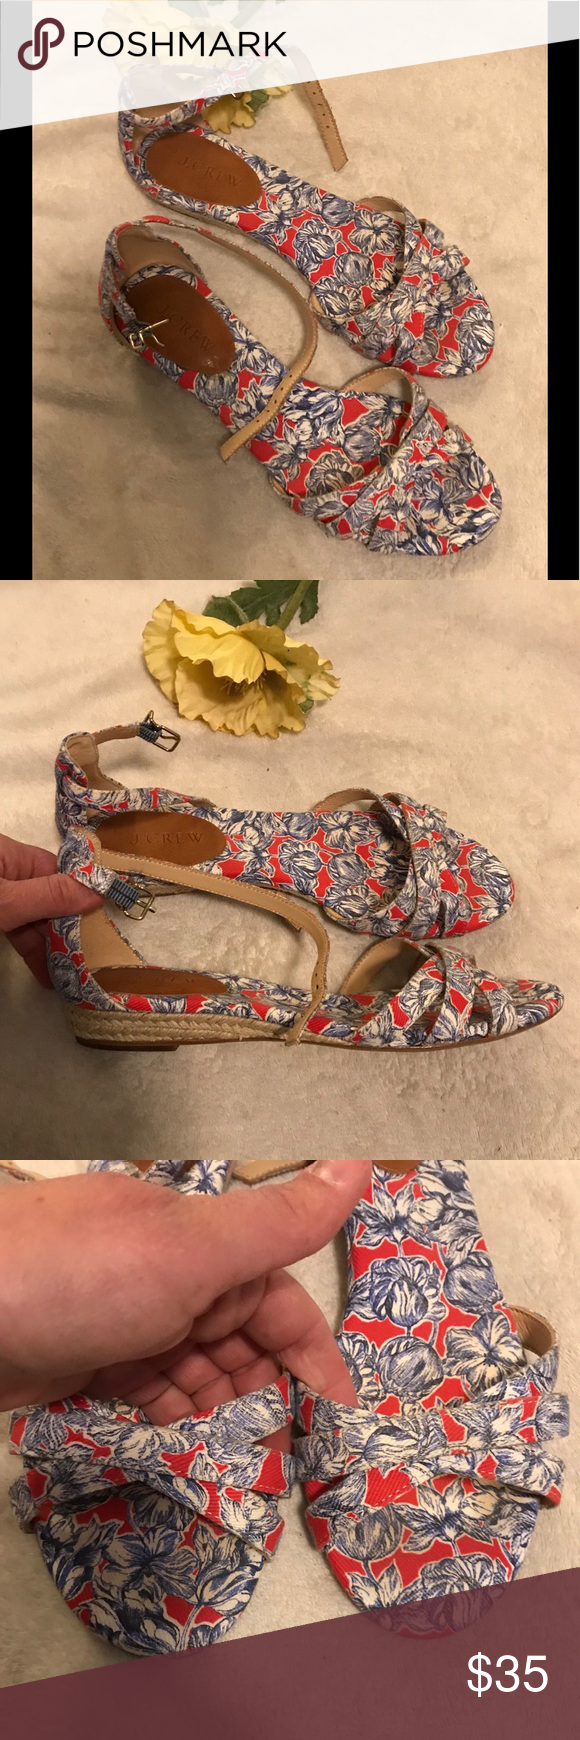 20b8716f6 J. Crew liberty floral print Marina mini-wedge Size 8. Good used condition.  J. Crew Shoes Sandals